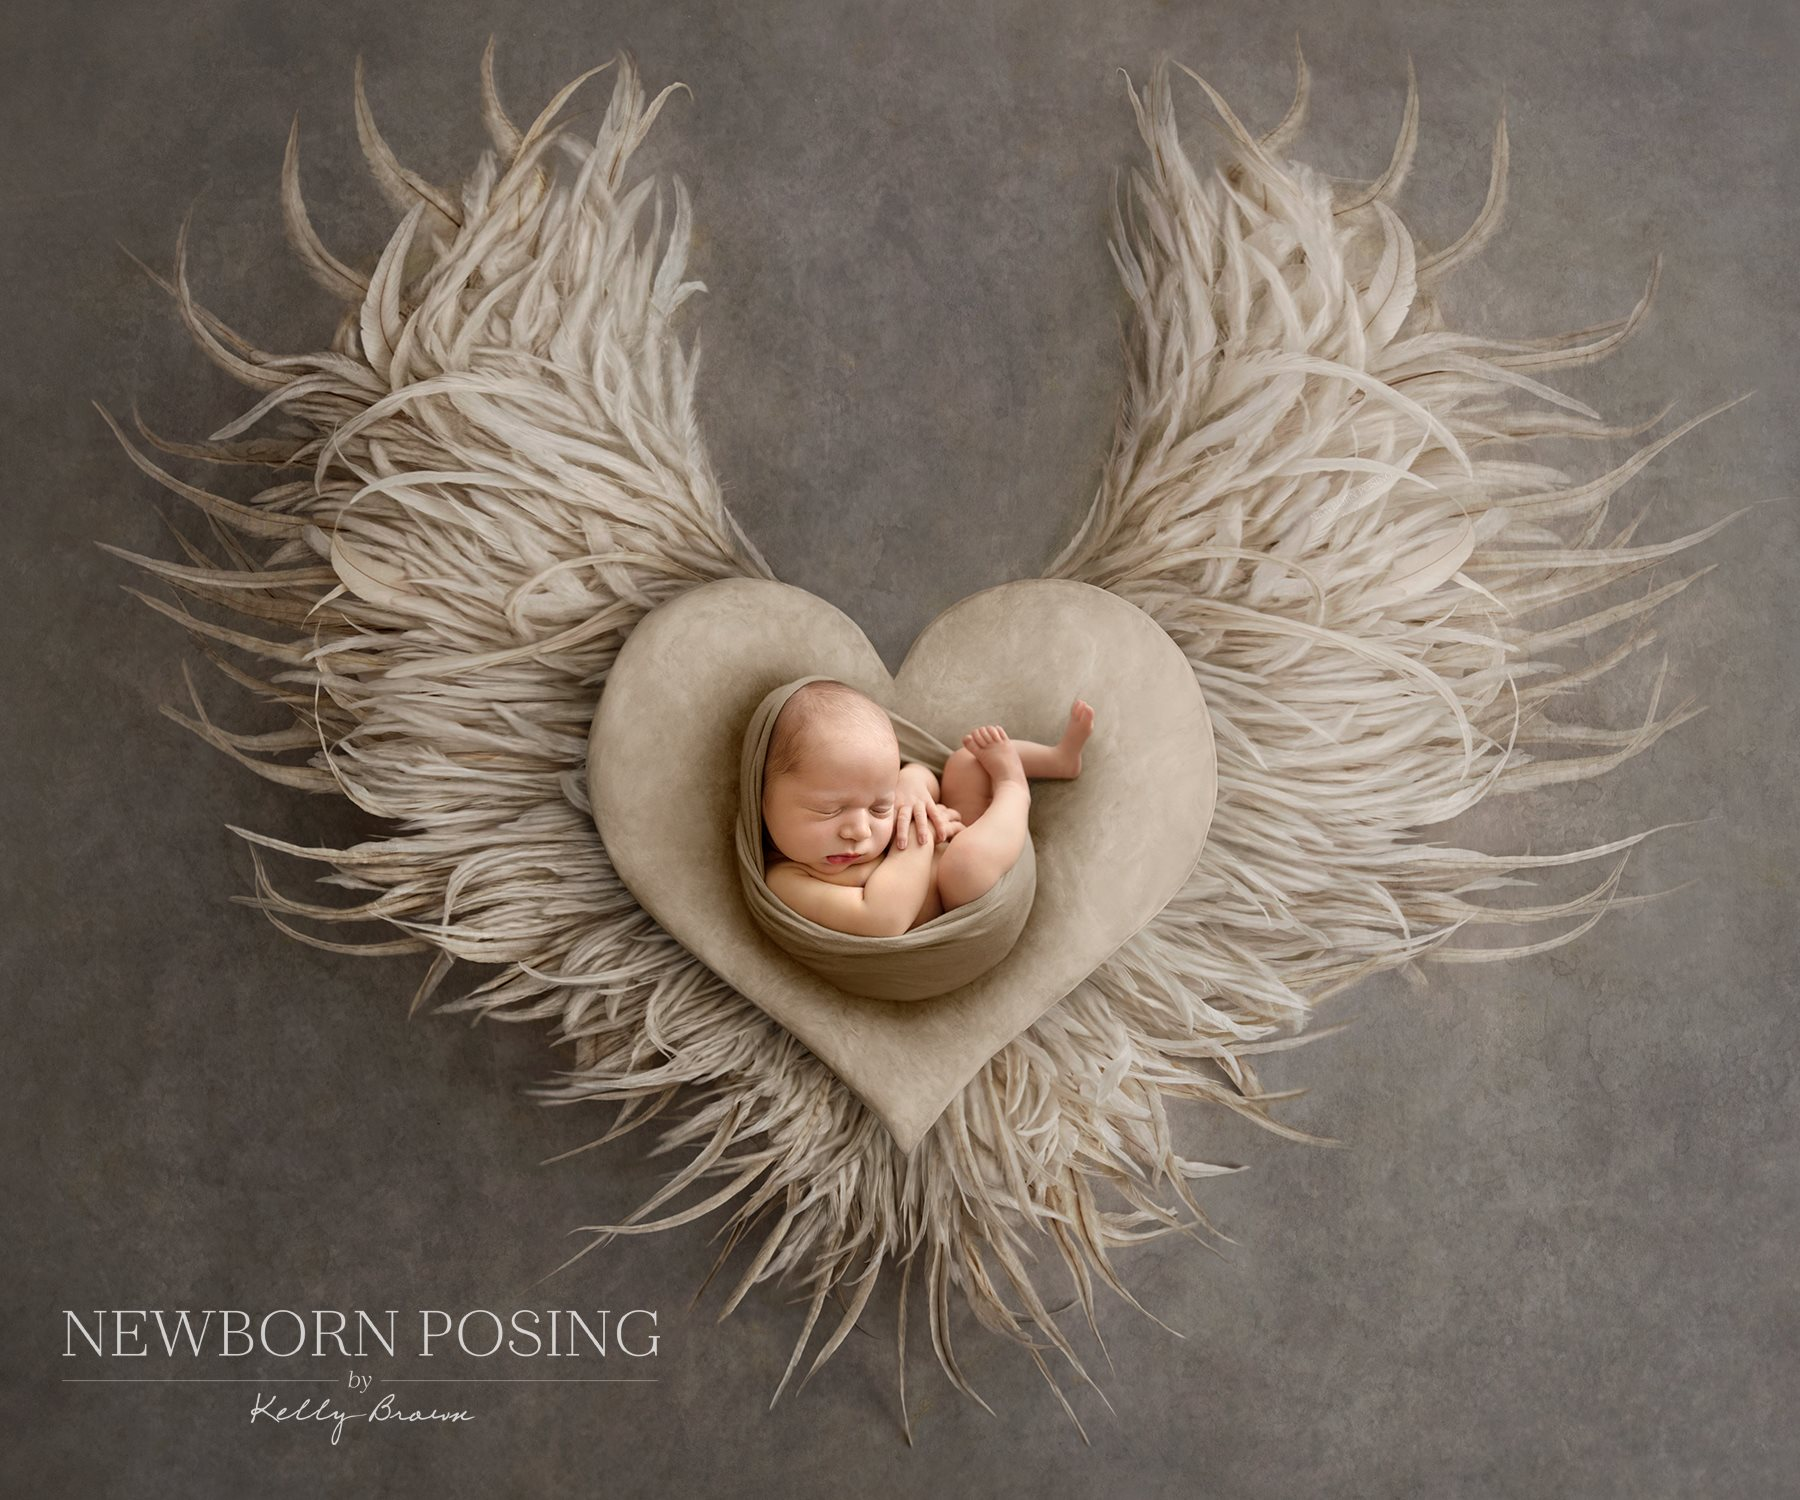 Newborn photography of baby in heart with wings